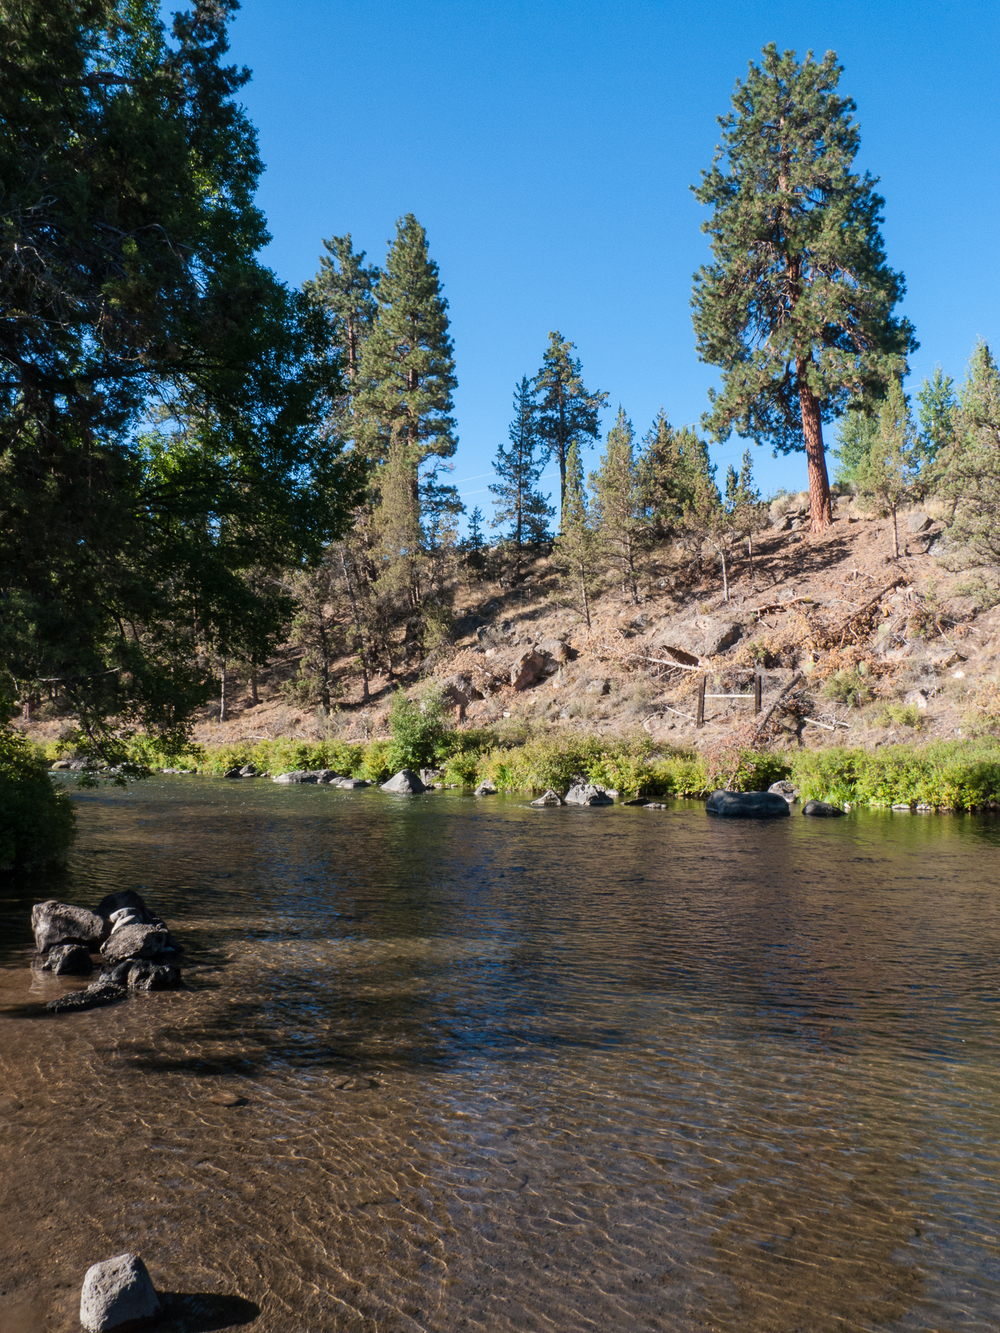 The Deschutes River runs through the park, and made for a very peaceful scene. We tried to swim, but it was really too shallow.